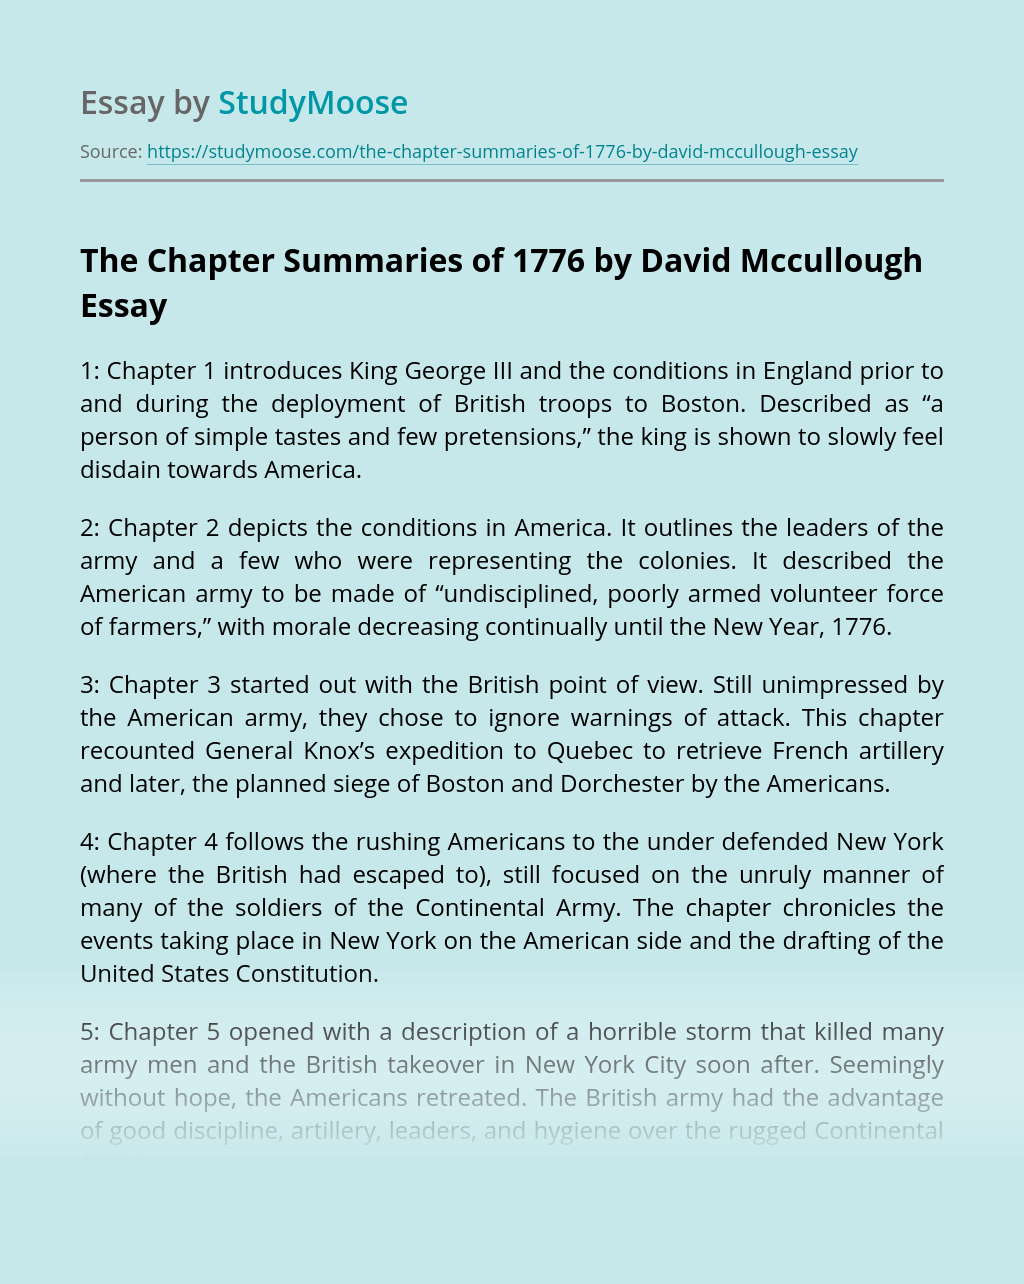 The Chapter Summaries of 1776 by David Mccullough